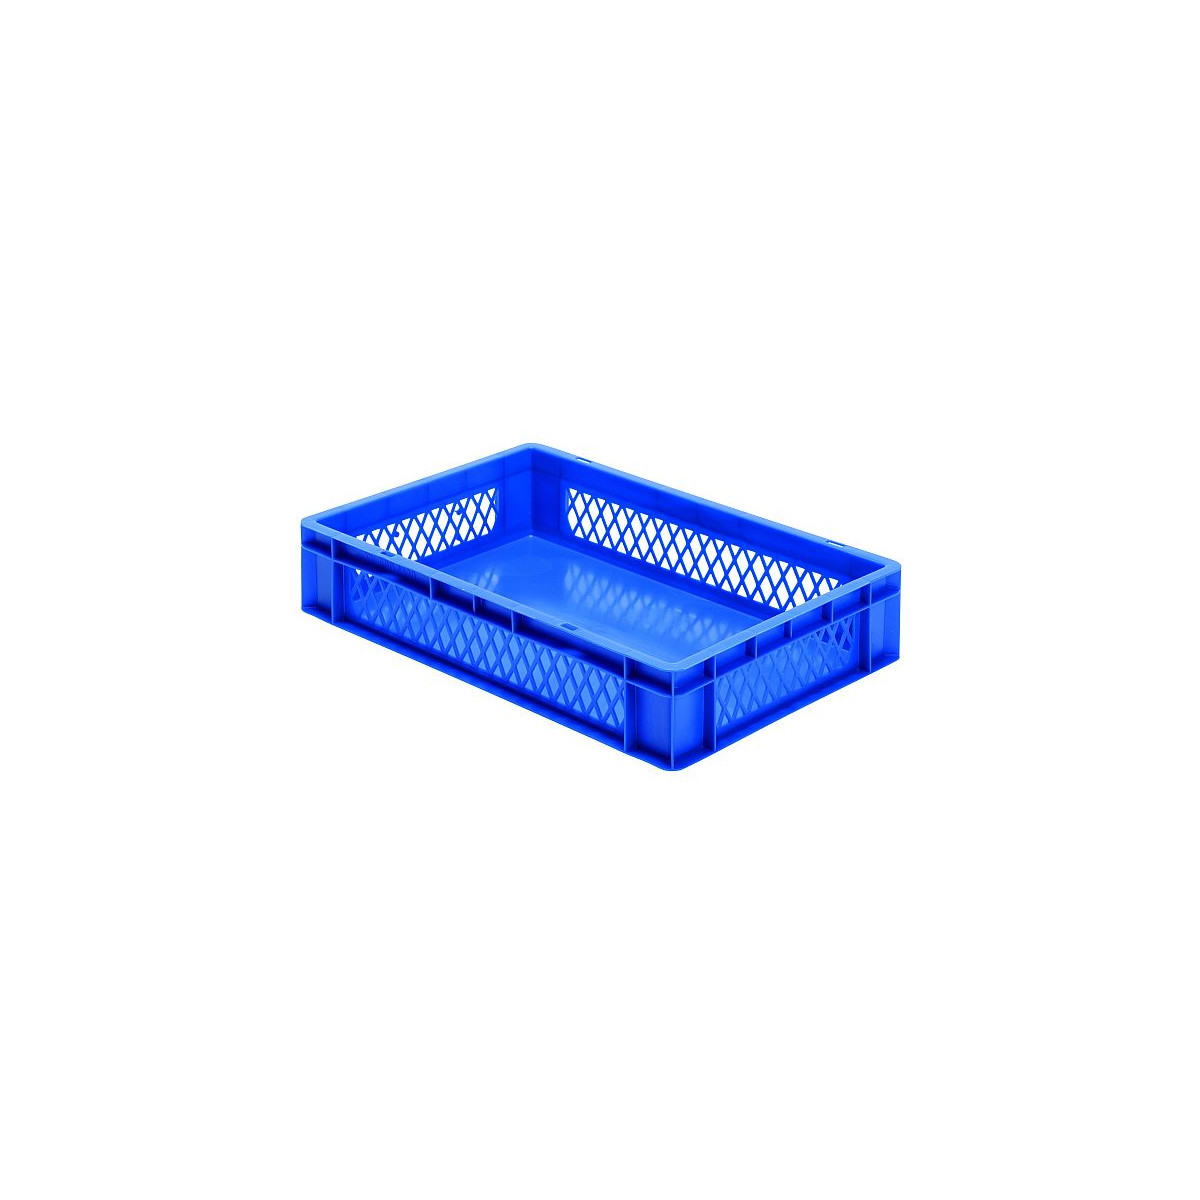 Transport stapelkasten tk 600 120 1 blau 600x400x120 mm for Aufstellpool 400 x 120